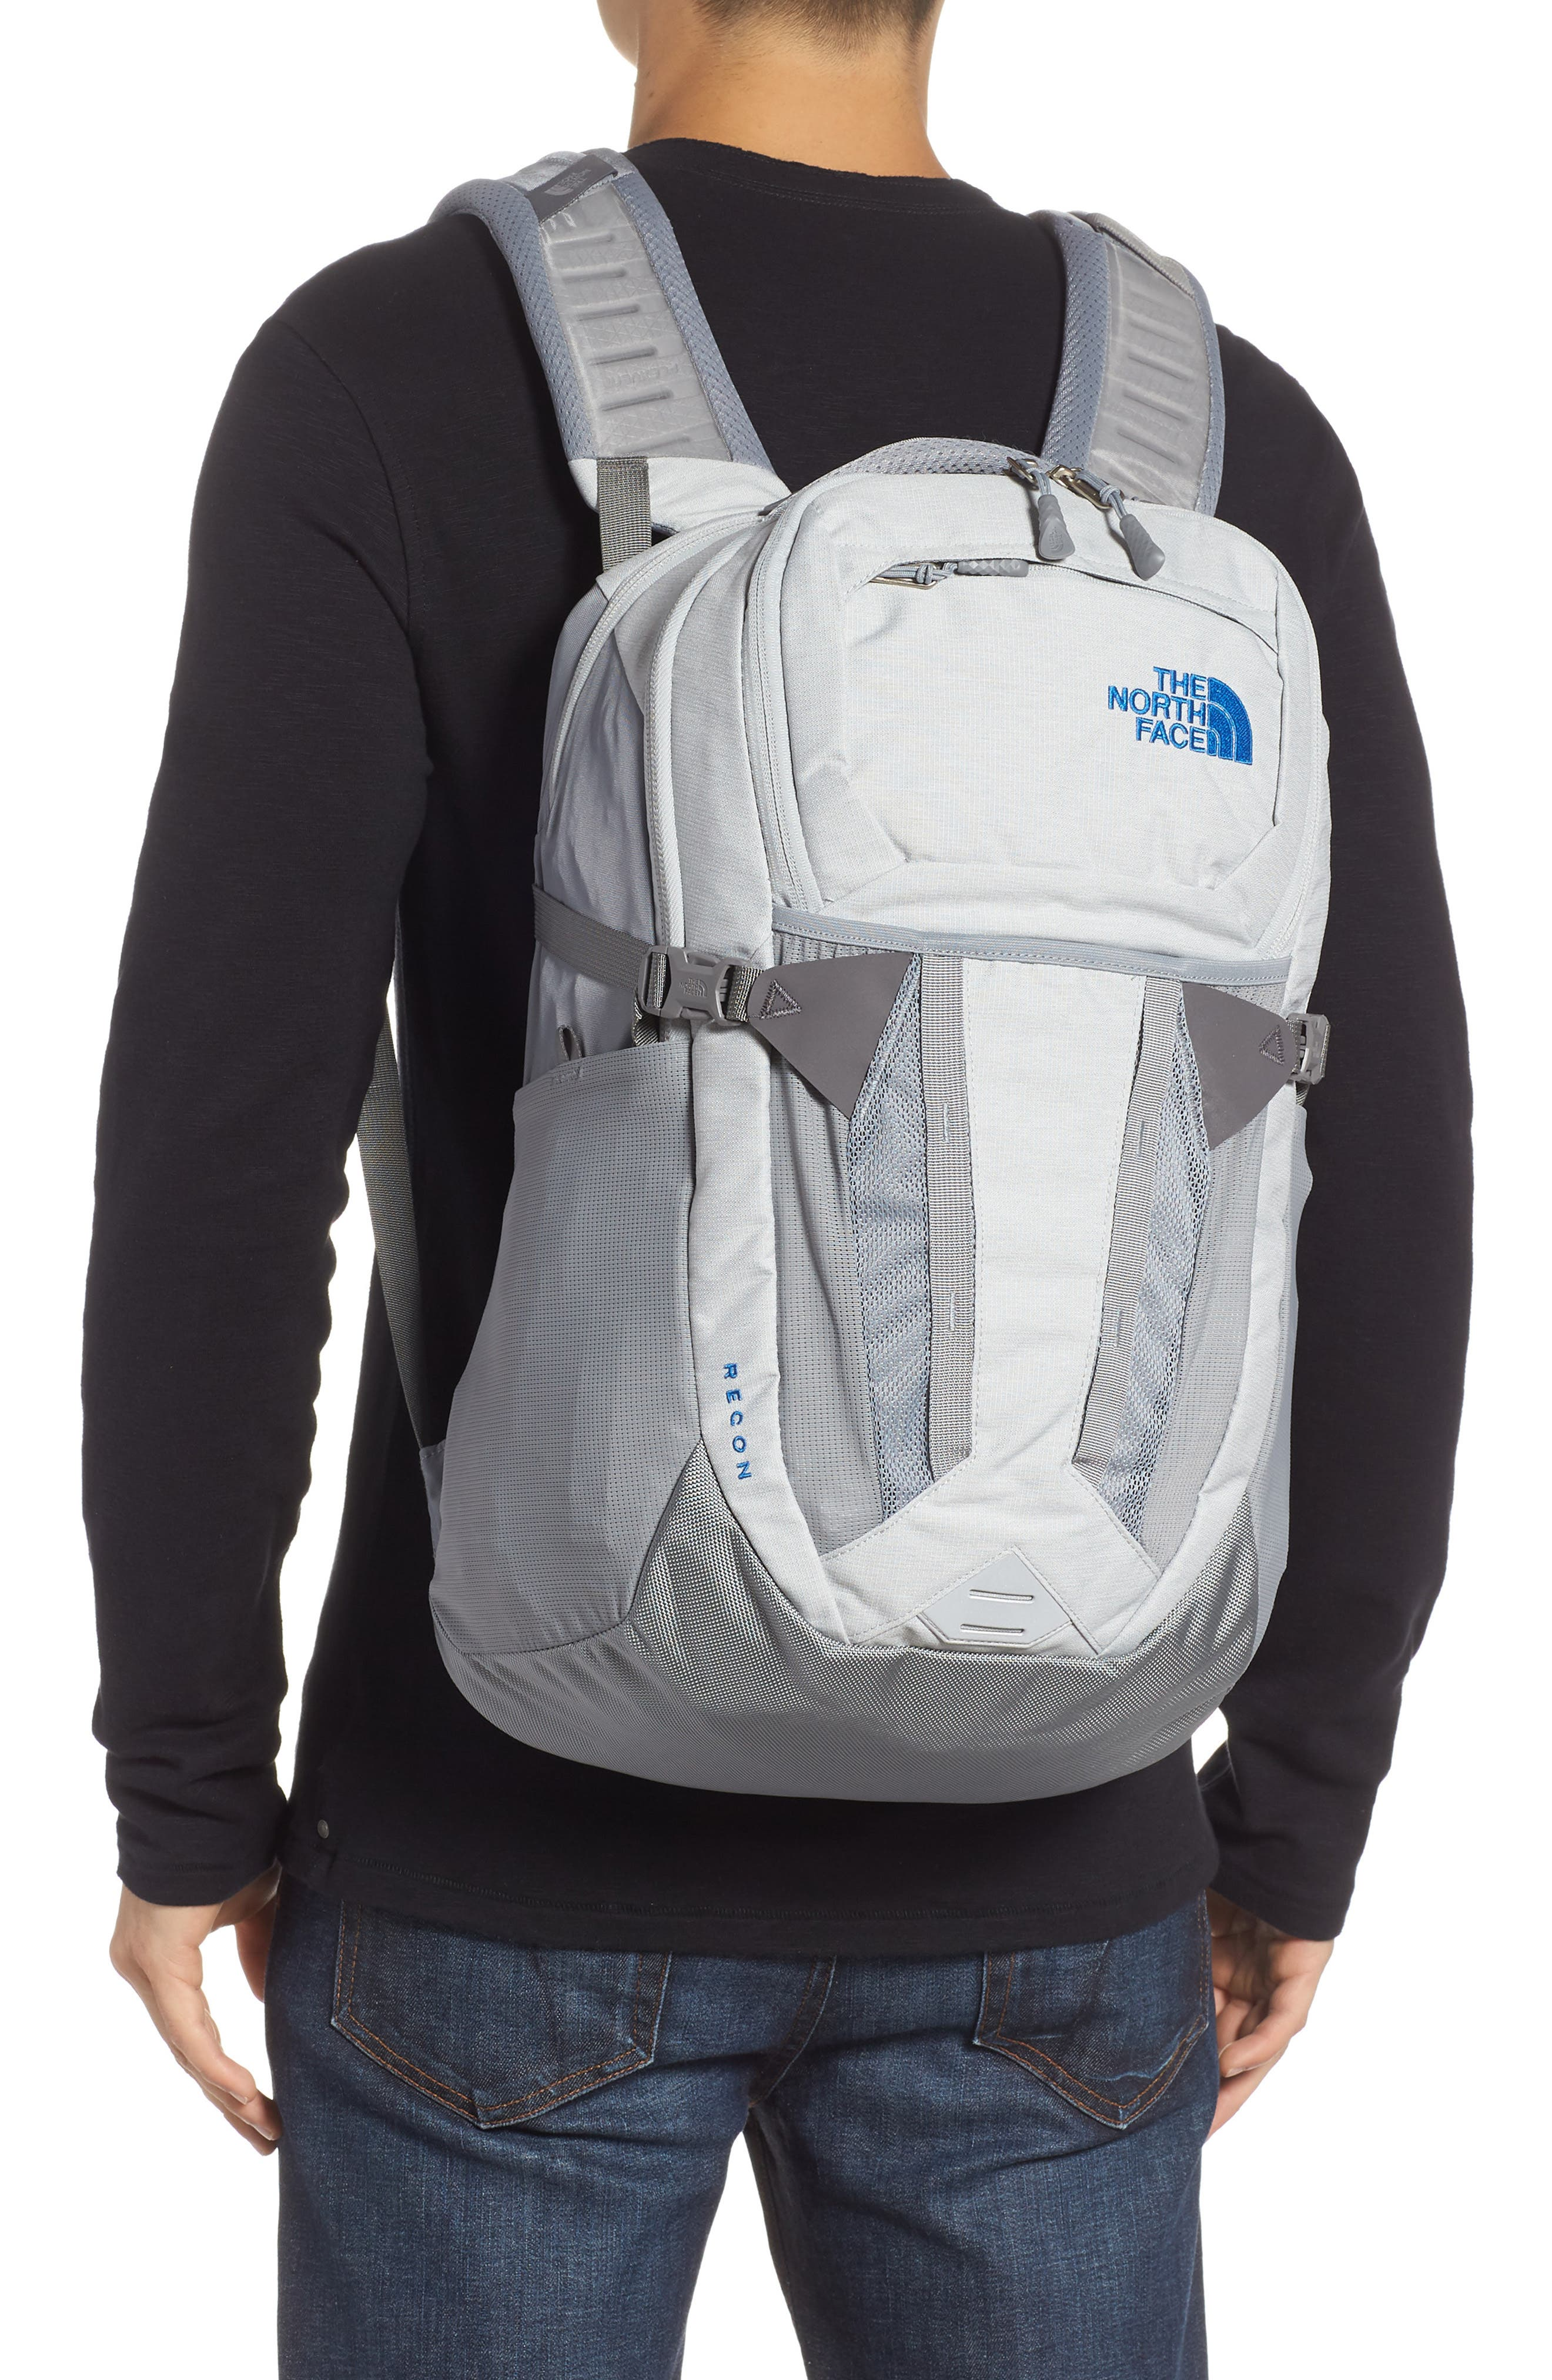 Recon Backpack,                             Alternate thumbnail 2, color,                             HIGH RISE GREY HEATHER/ GREY